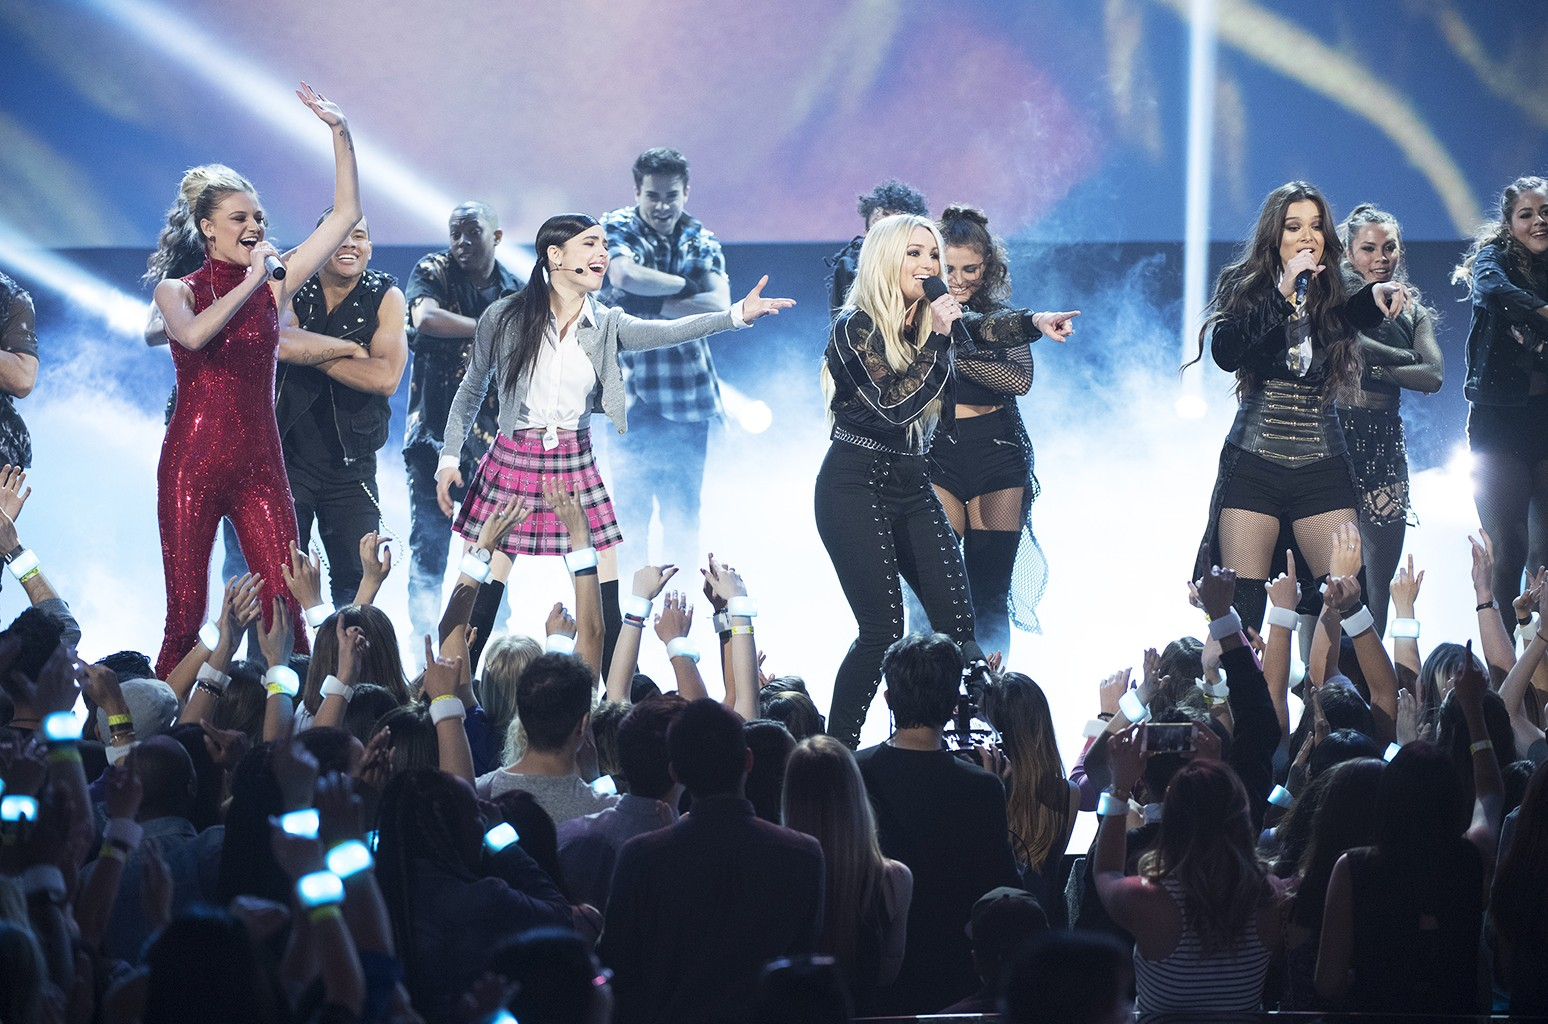 Kelsea Ballerini, Sofia Carson, Jamie Lynn Spears and Hailee Steinfeld during the Britney Spears tribute at the 2017 Radio Disney Music Awards.